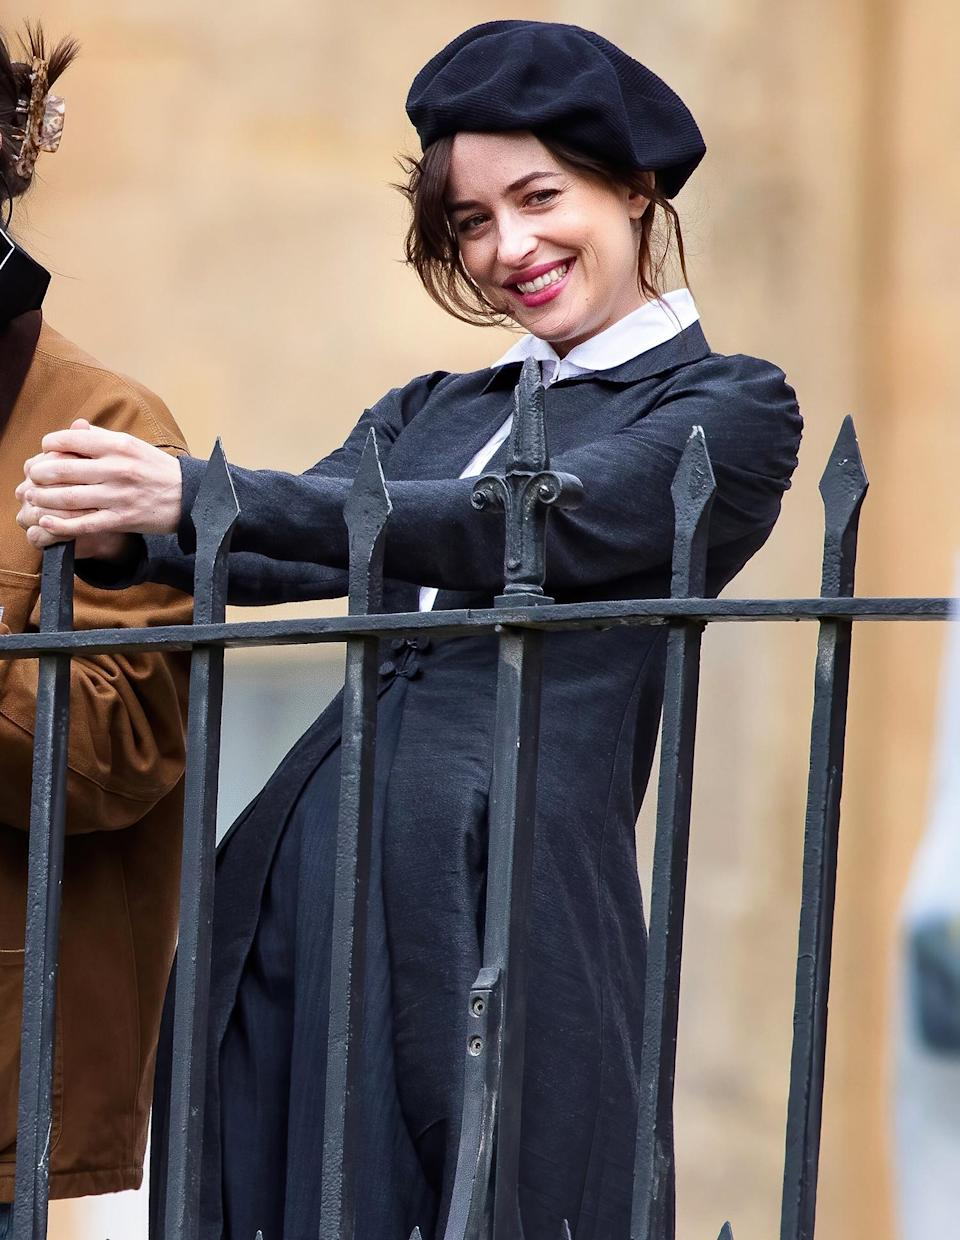 <p>Dakota Johnson gets into character for Netflix's adaptation of Jane Austen's classic book <em>Persuasion </em>on the Royal Crescent in Bath, England.</p>